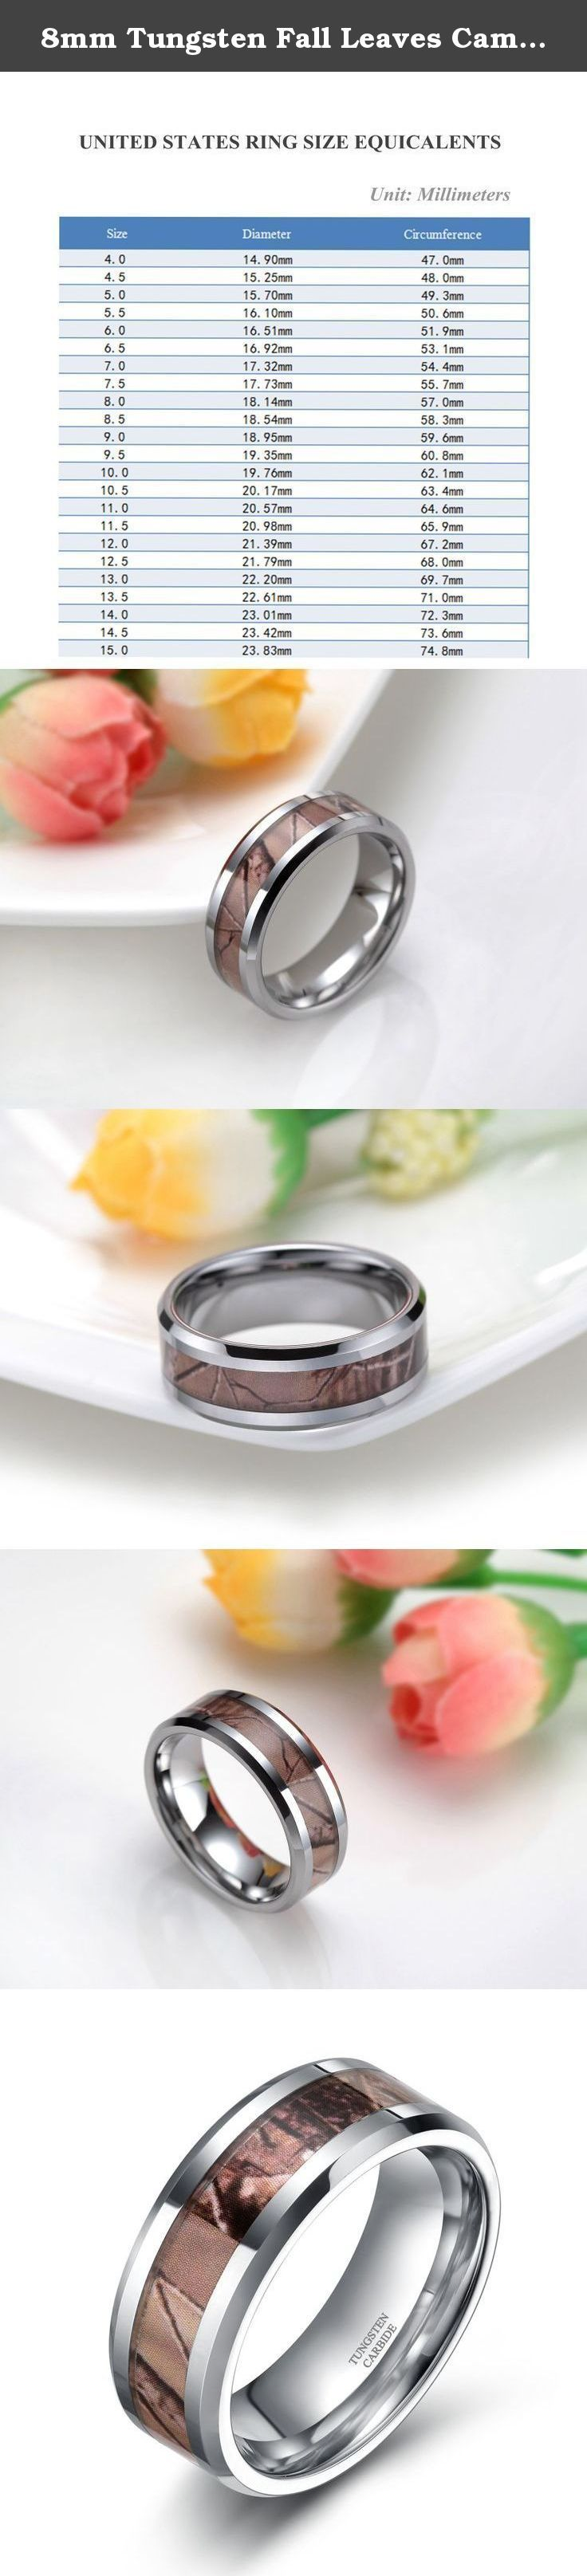 8mm Tungsten Fall Leaves Camouflage Inlay Hunting Ring Wedding Engagement Band Comfort Fit Size 5-10(10). Why choose Frank S. Burton store to purchase? Reason.1: Amazon Authentication Brand;(Guaranteed Quality ) Reason.2: True & Pure Tungsten Material;(Scratch Proof & Hypoallergenic & Never Fade) Reason.3: Comfortable & Exquisite & Amazon Unique Design;(High Polish & Comfort Fit) Reason.4: Amazon Excellent and Fast Delivery;(Next,Second Day Delivery Option) Reason.5: Timely and 100%...